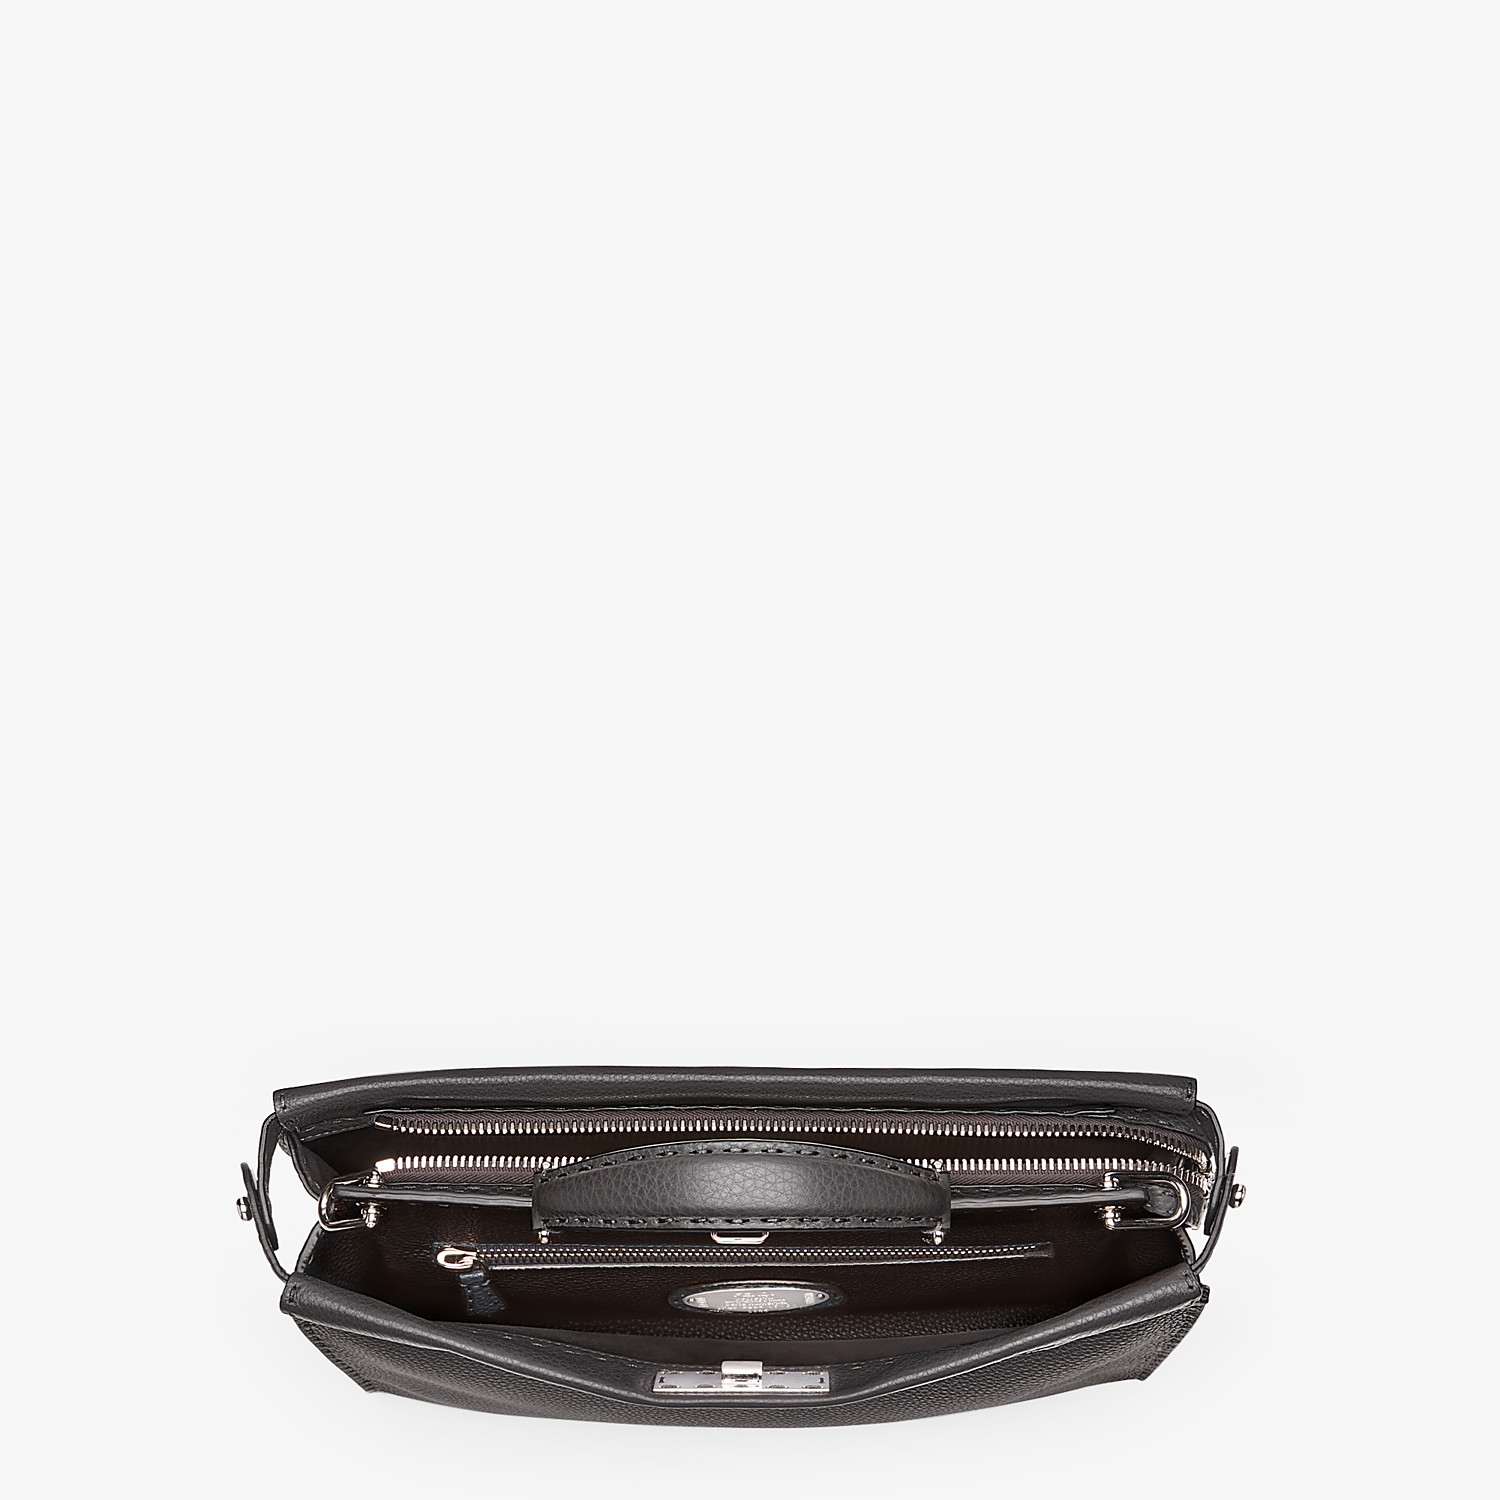 FENDI PEEKABOO ICONIC FIT - Black leather Selleria bag - view 4 detail